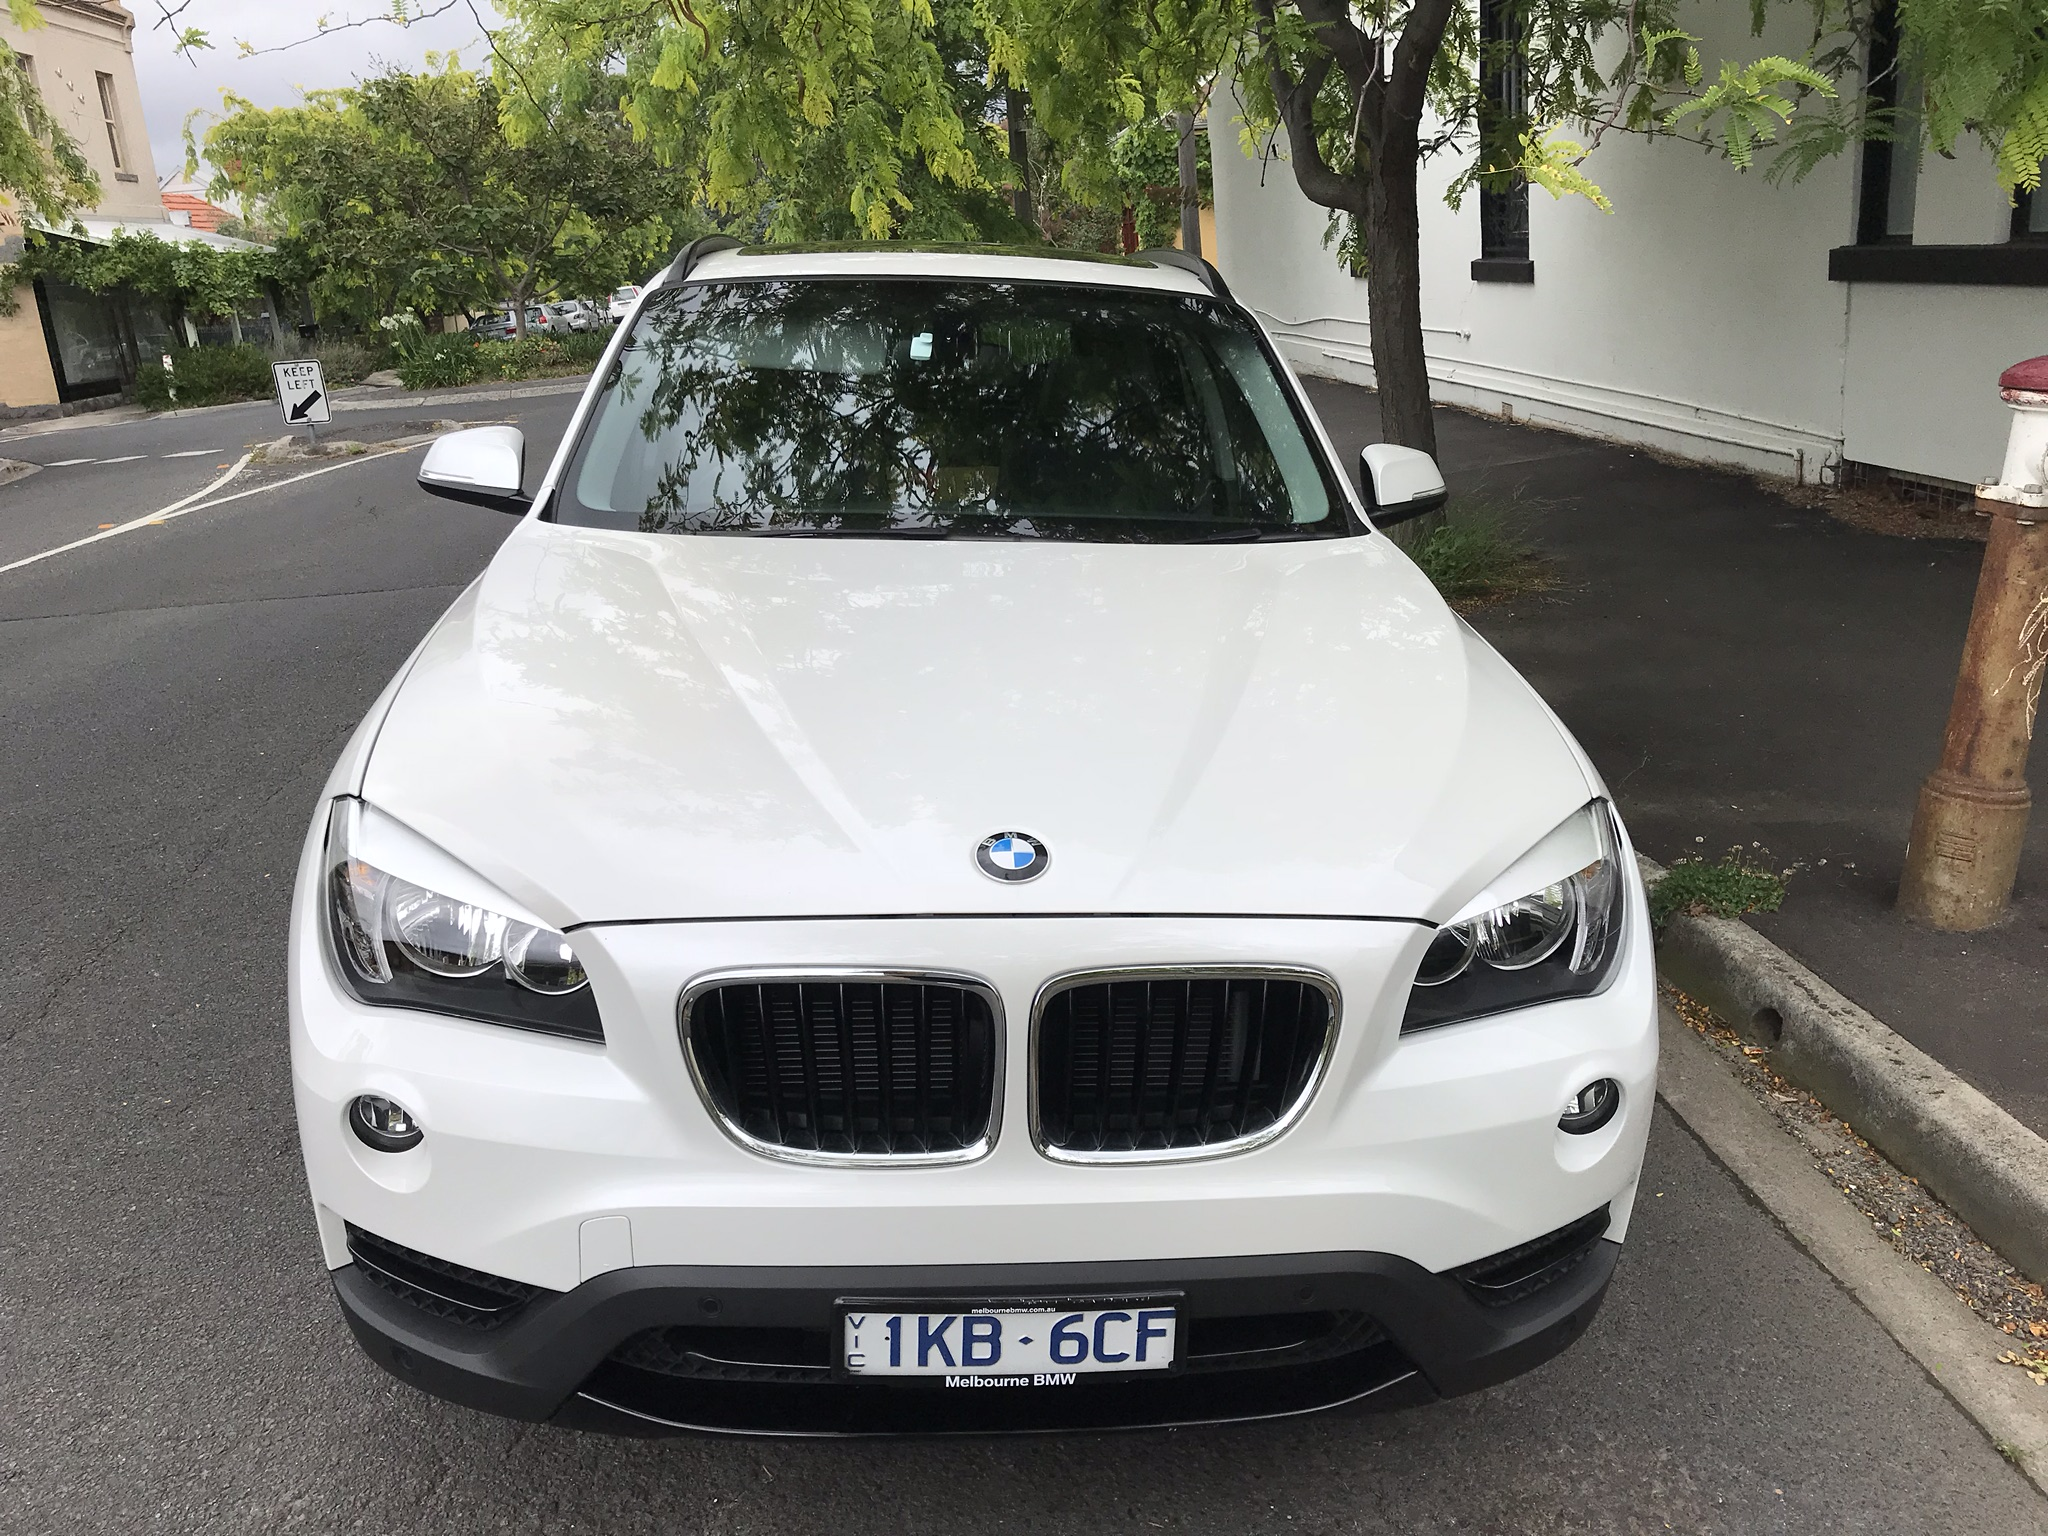 Picture of Aja's 2013 BMW X1